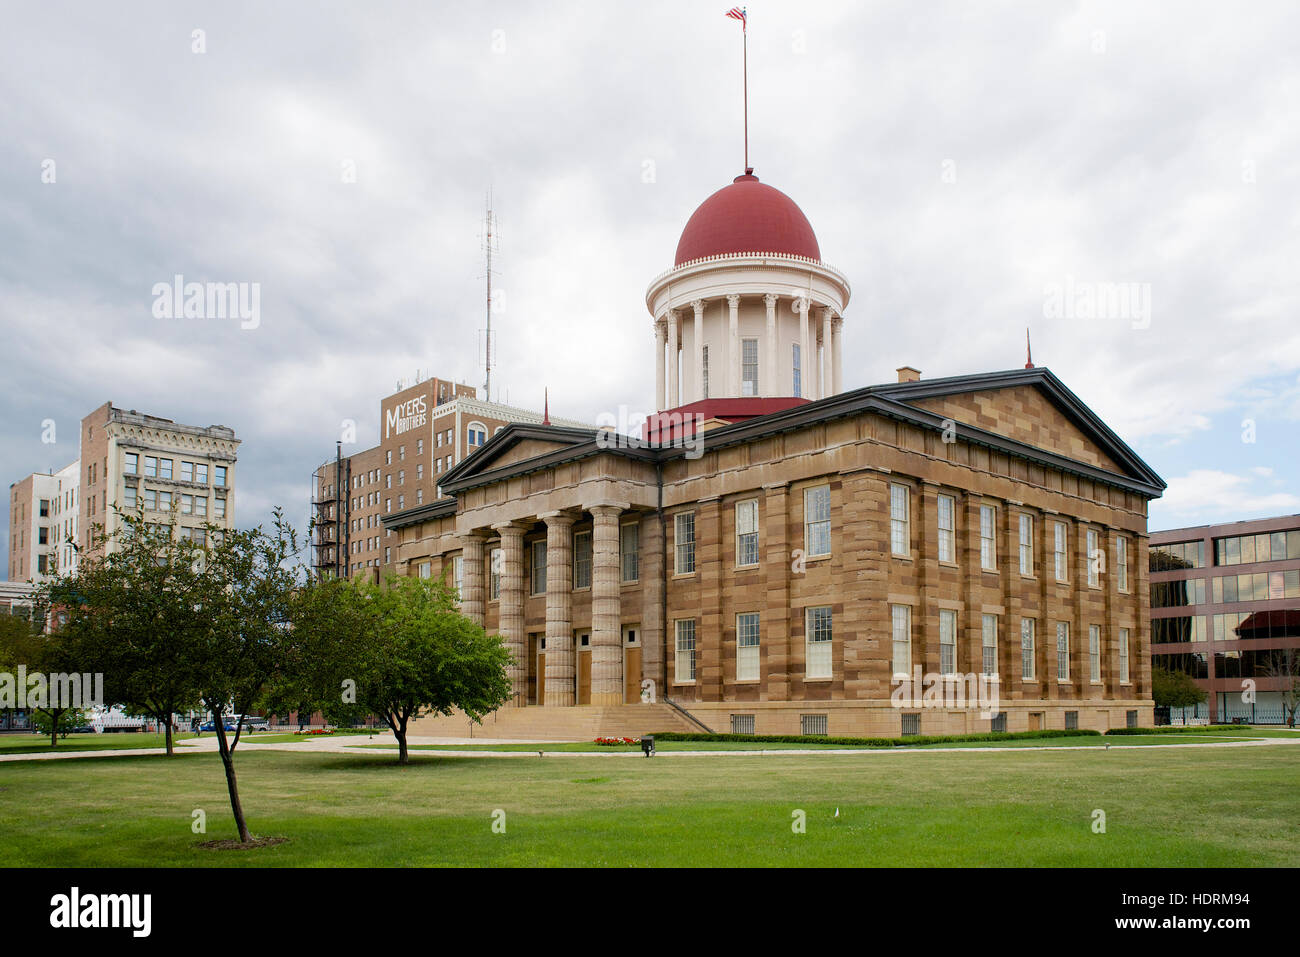 Old State Capitol, Springfield, Sangamon County, Illinois, USA - Stock Image